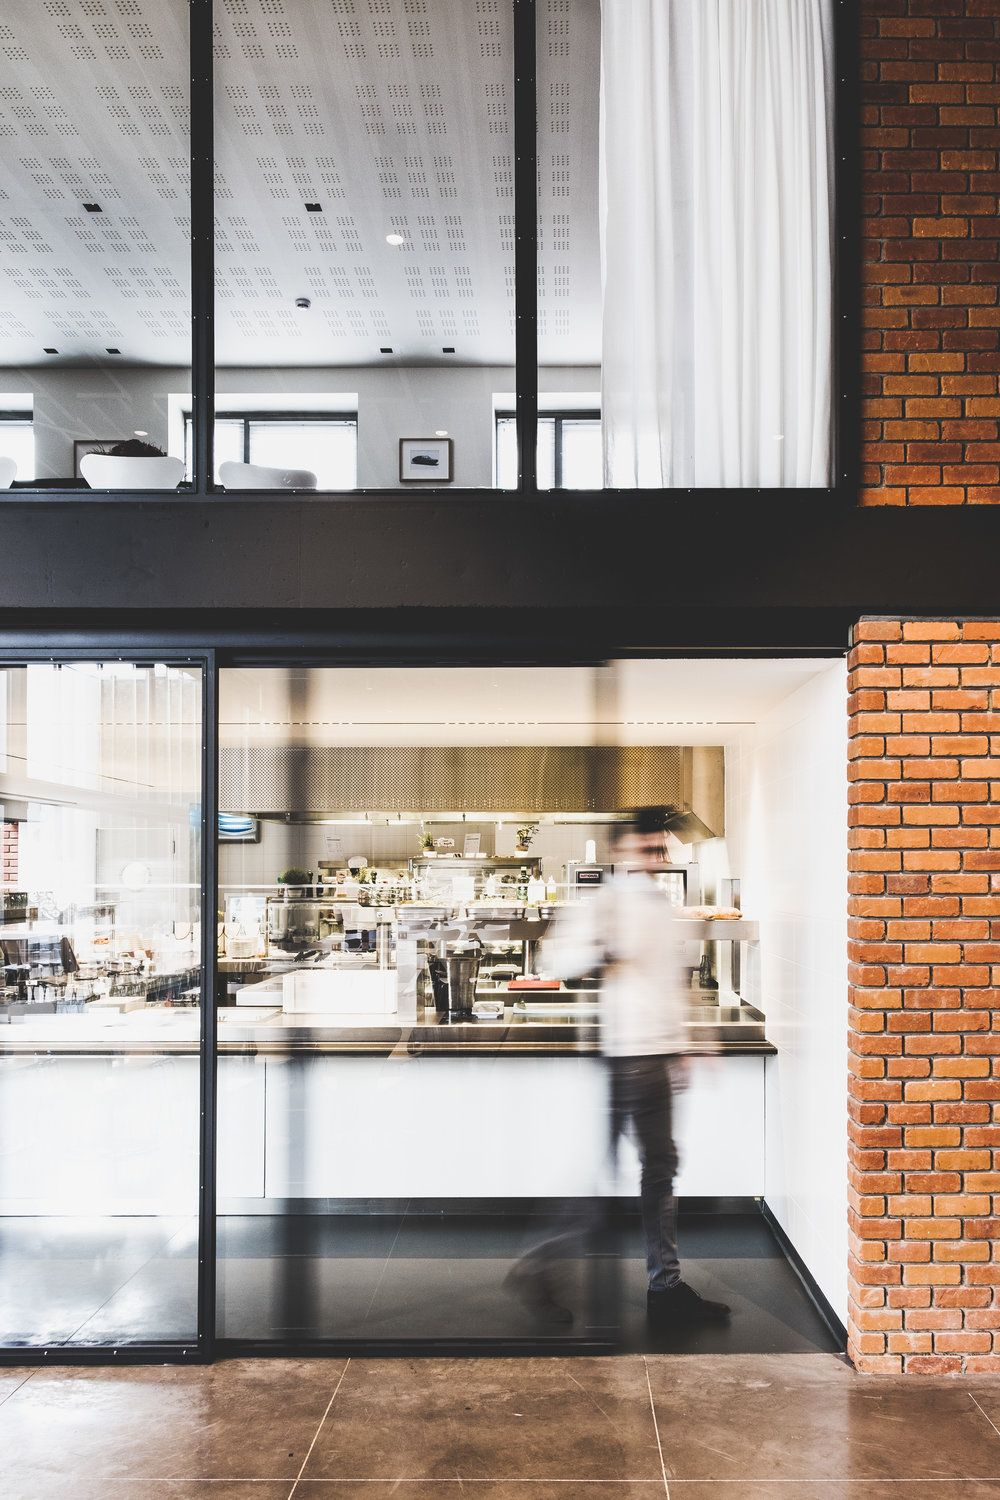 A self service restaurant with an open kitchen and sliding